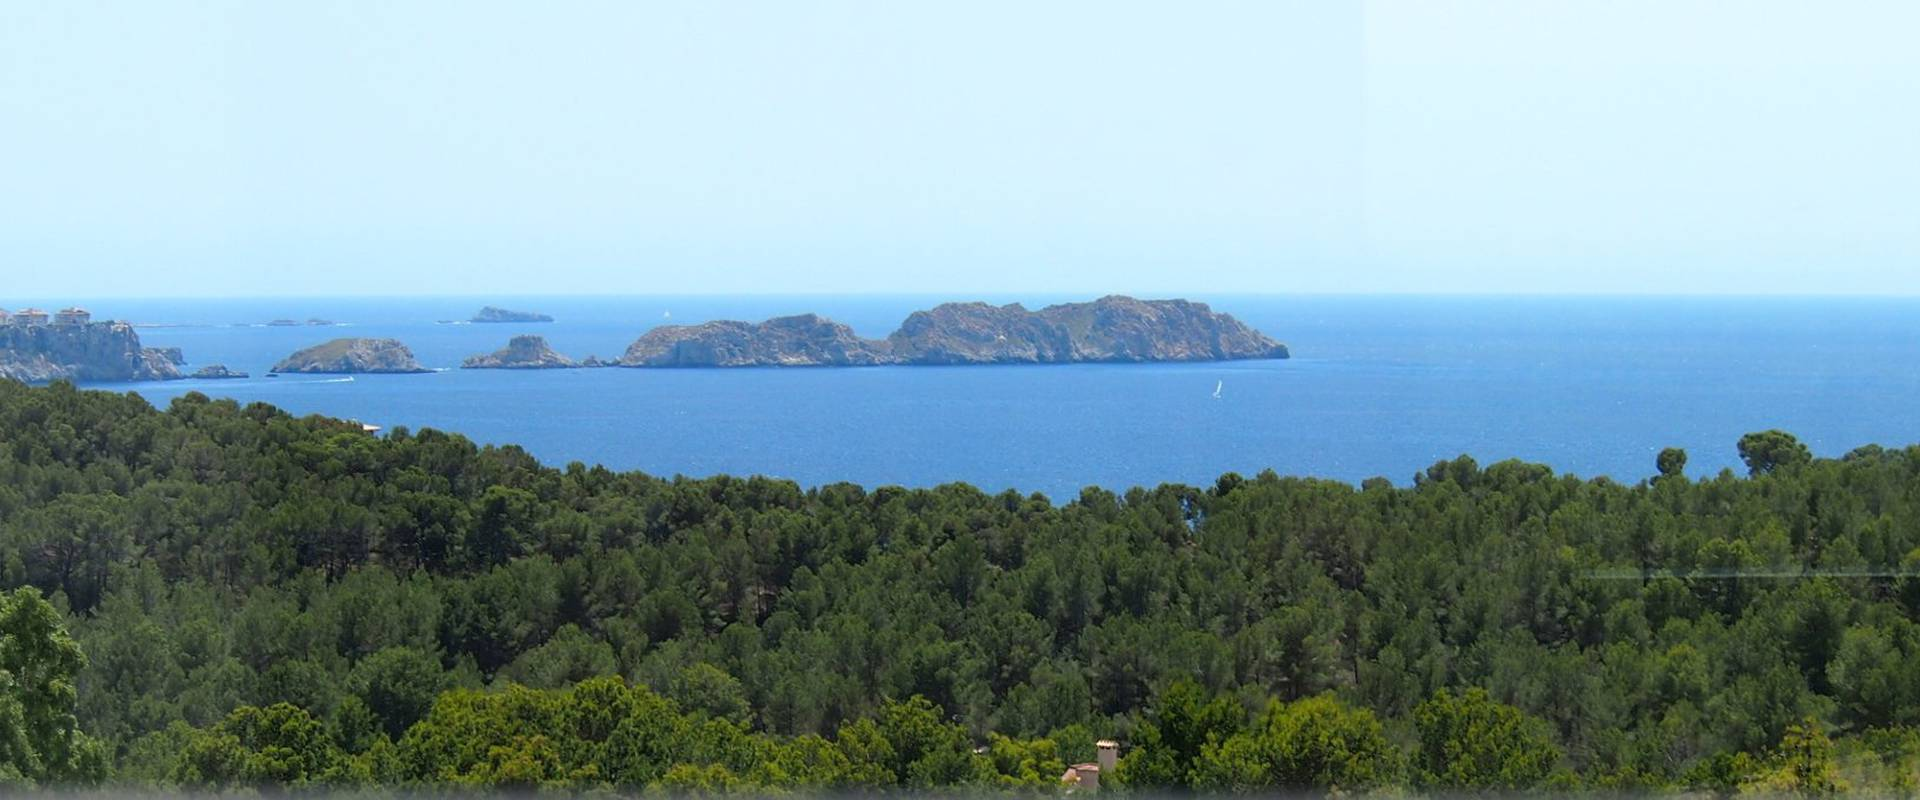 Find lovely landscapes Continental Don Antonio Hotel Paguera, Mallorca